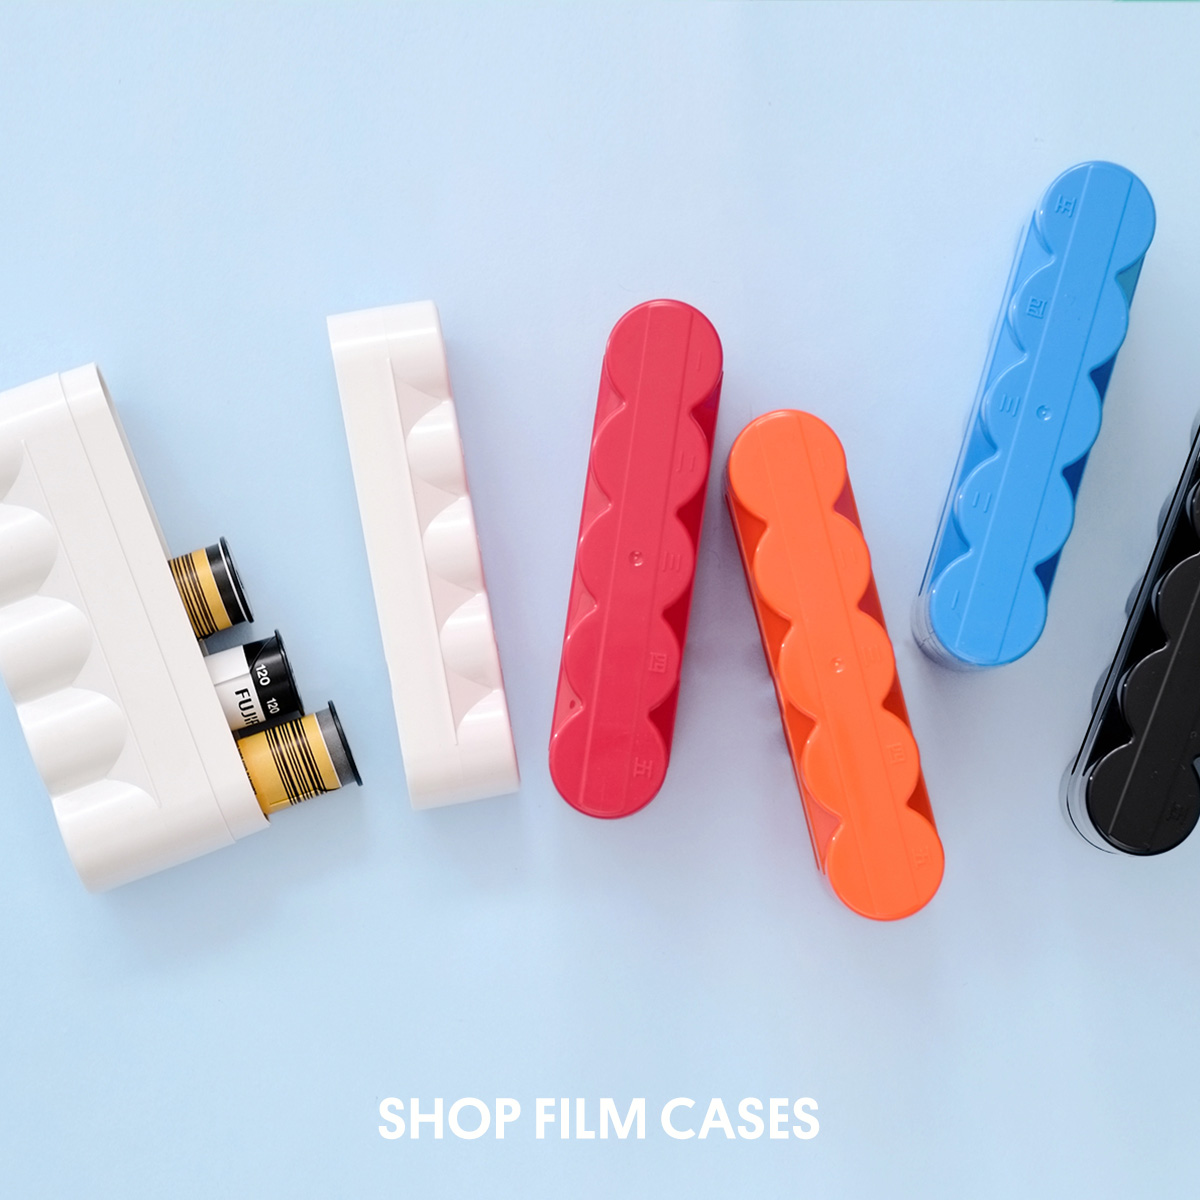 Shop Film Cases at Parallax Photographic